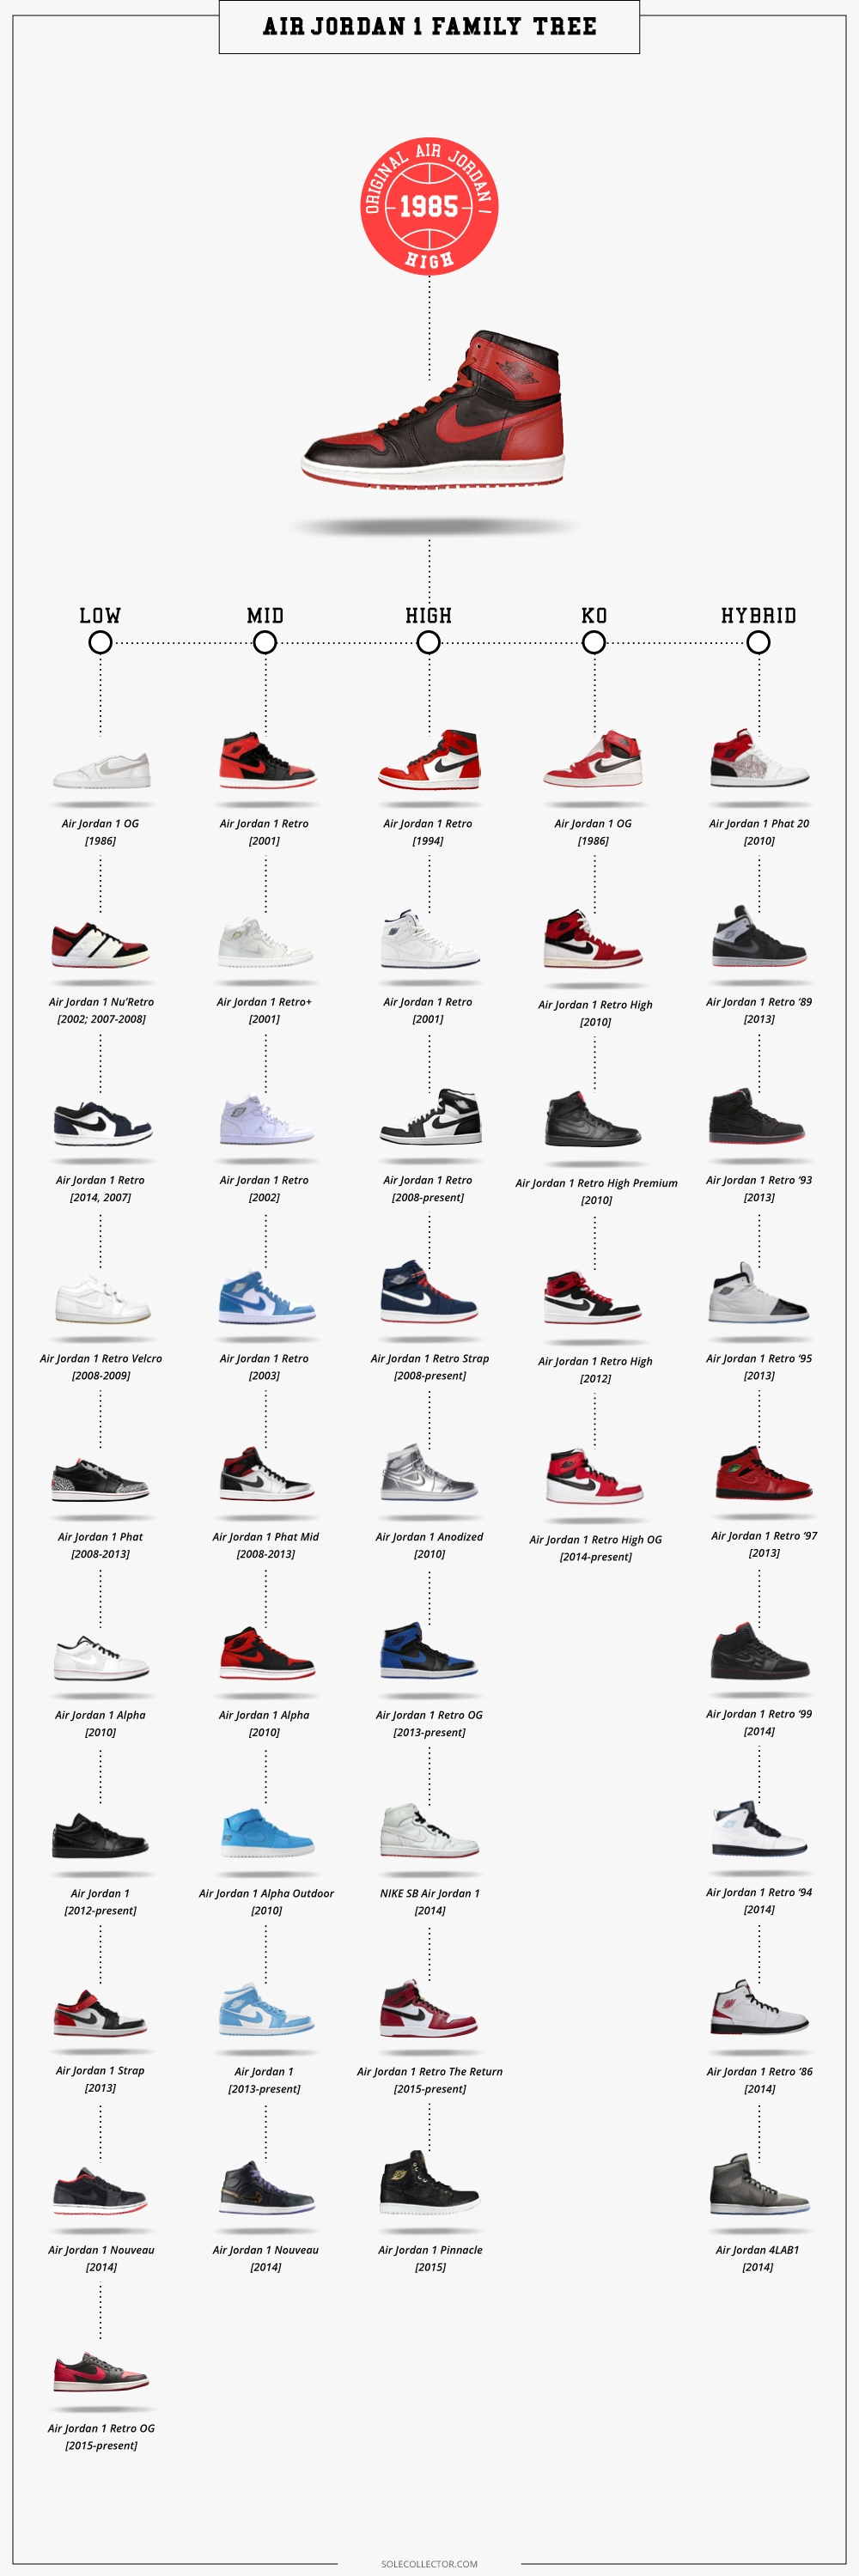 a6e8773162ae The Genealogy of the Air Jordan 1